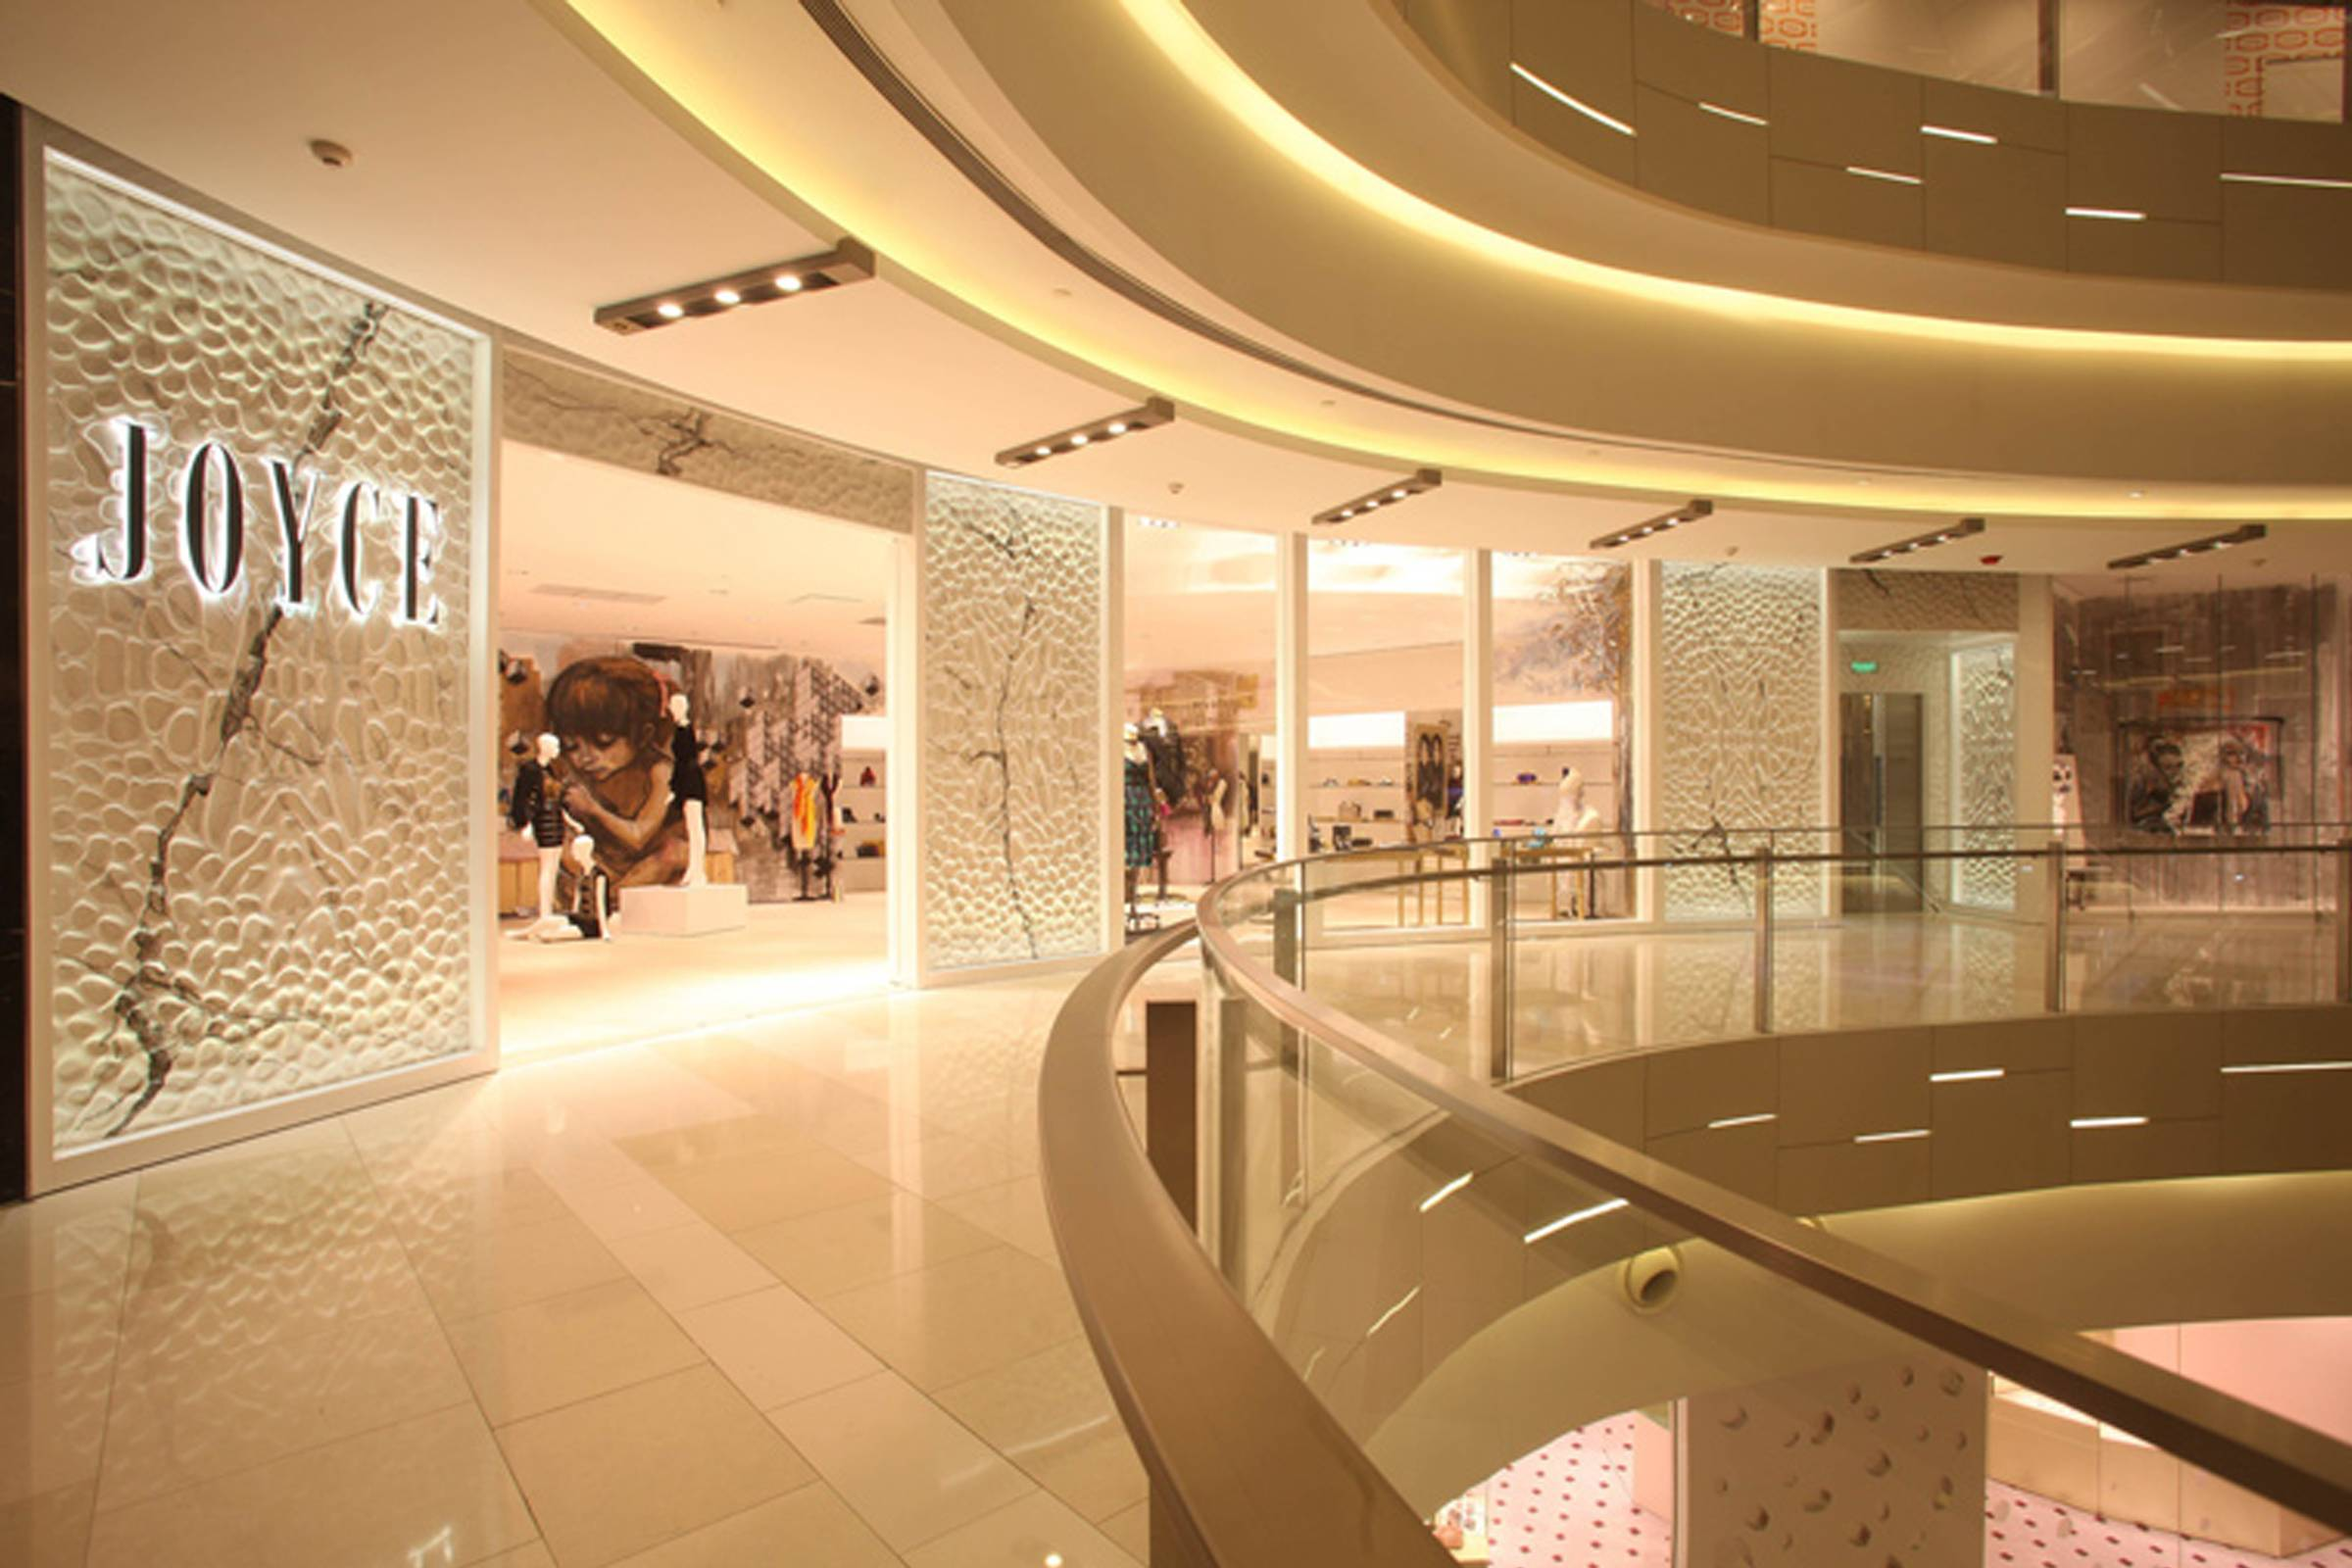 Joyce boutique at IAPM Mall in Shanghai